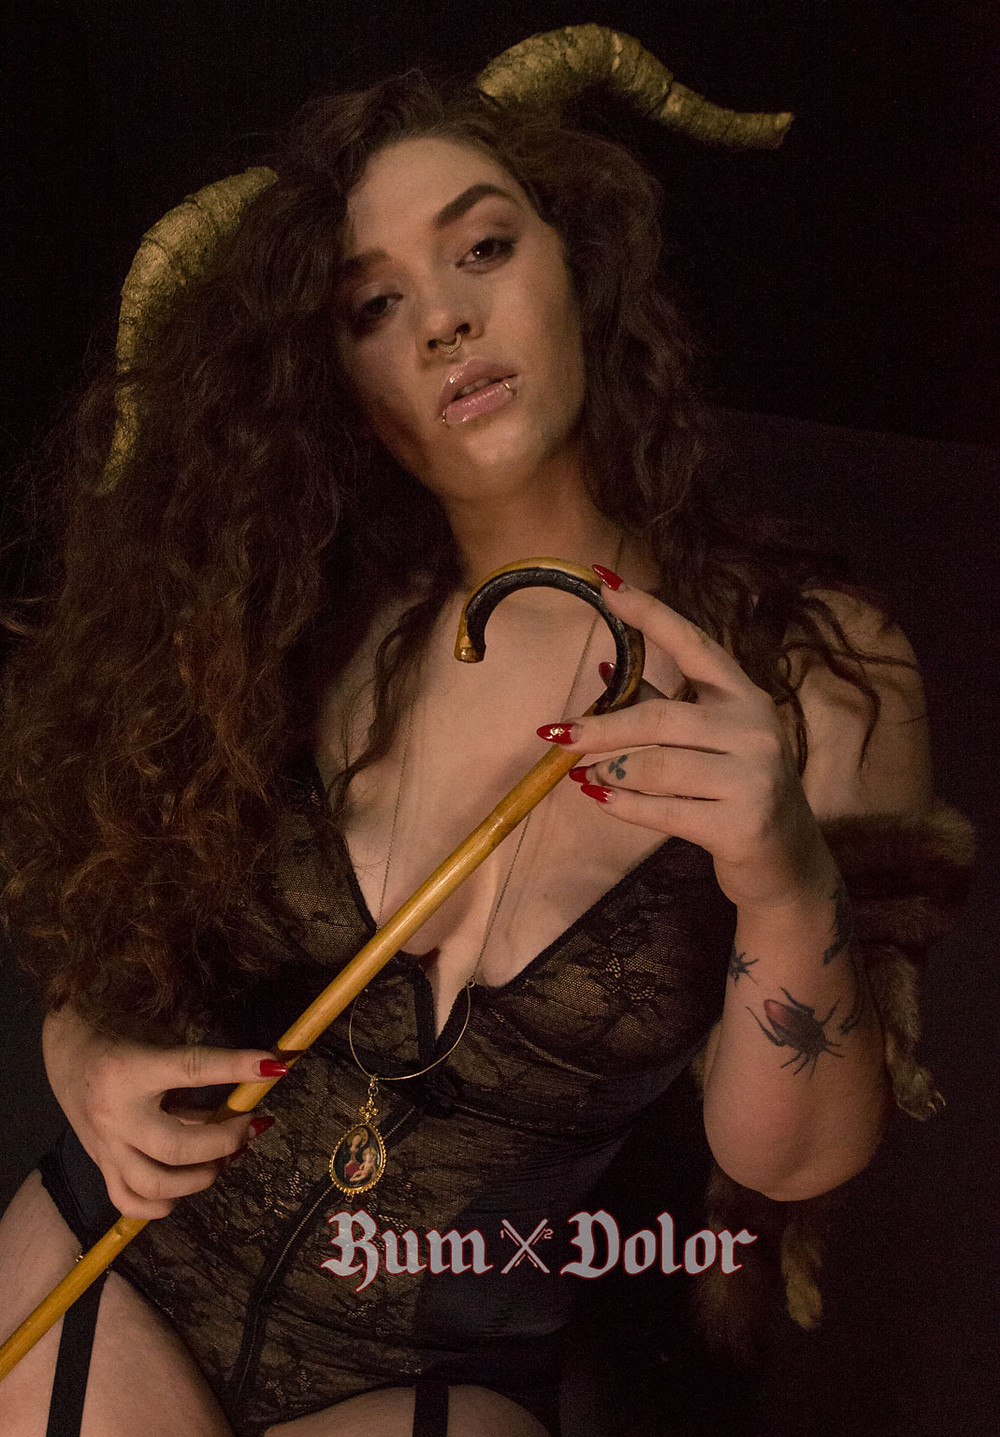 tattood redhead with curly hair holding a crop in lingerie